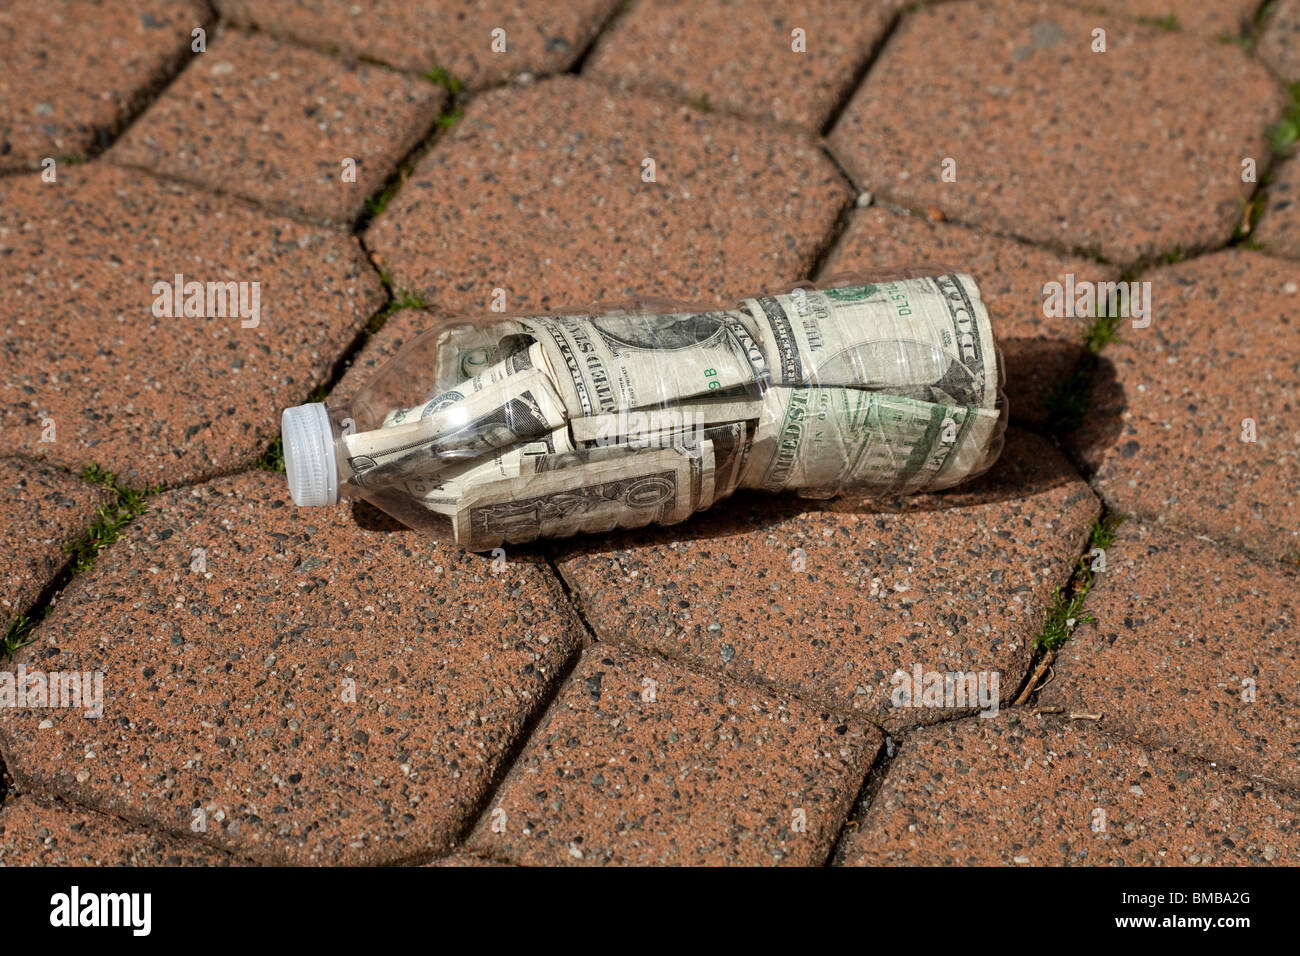 Plastic Bottle and Dollar close up - Stock Image